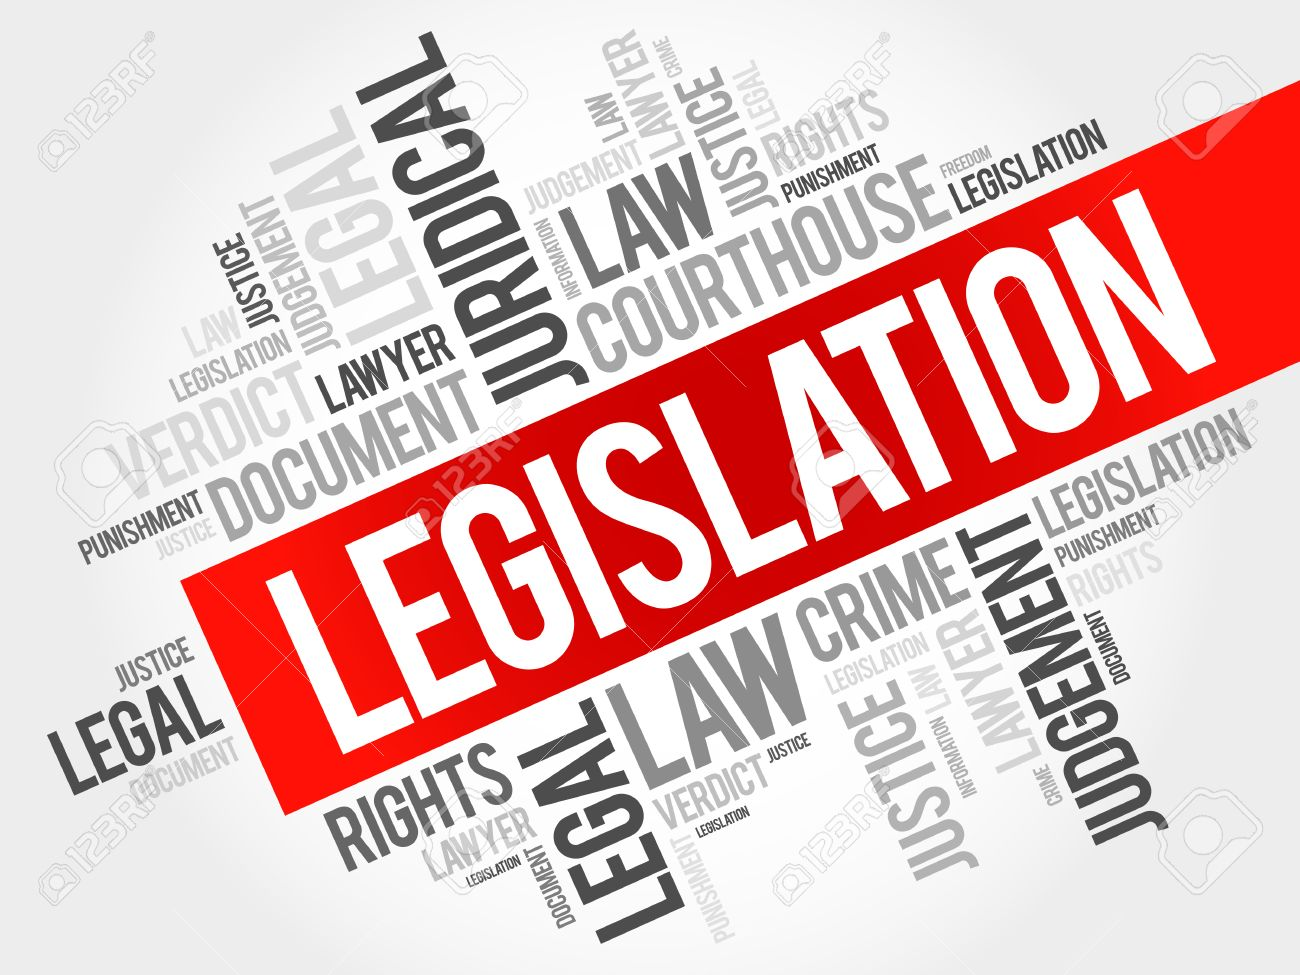 Identify relevant legislation, national policies and local systems that relate to safeguarding and protection from abuse